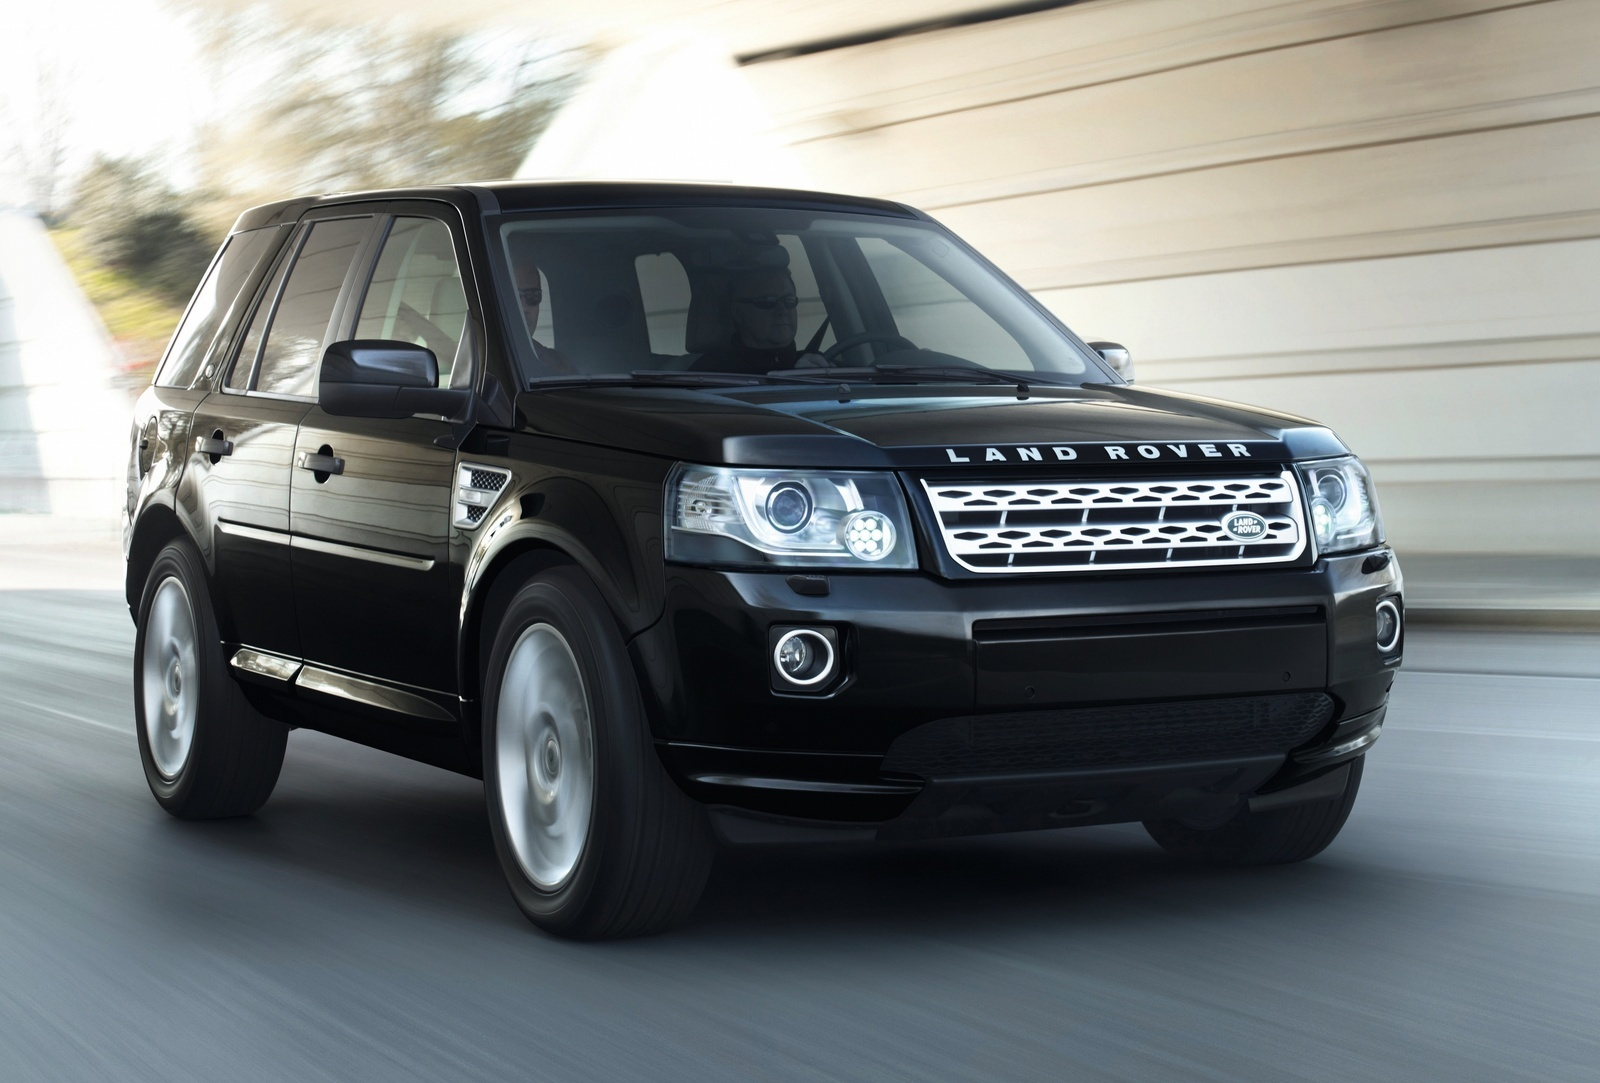 2014 Land Rover Lr2 - Overview